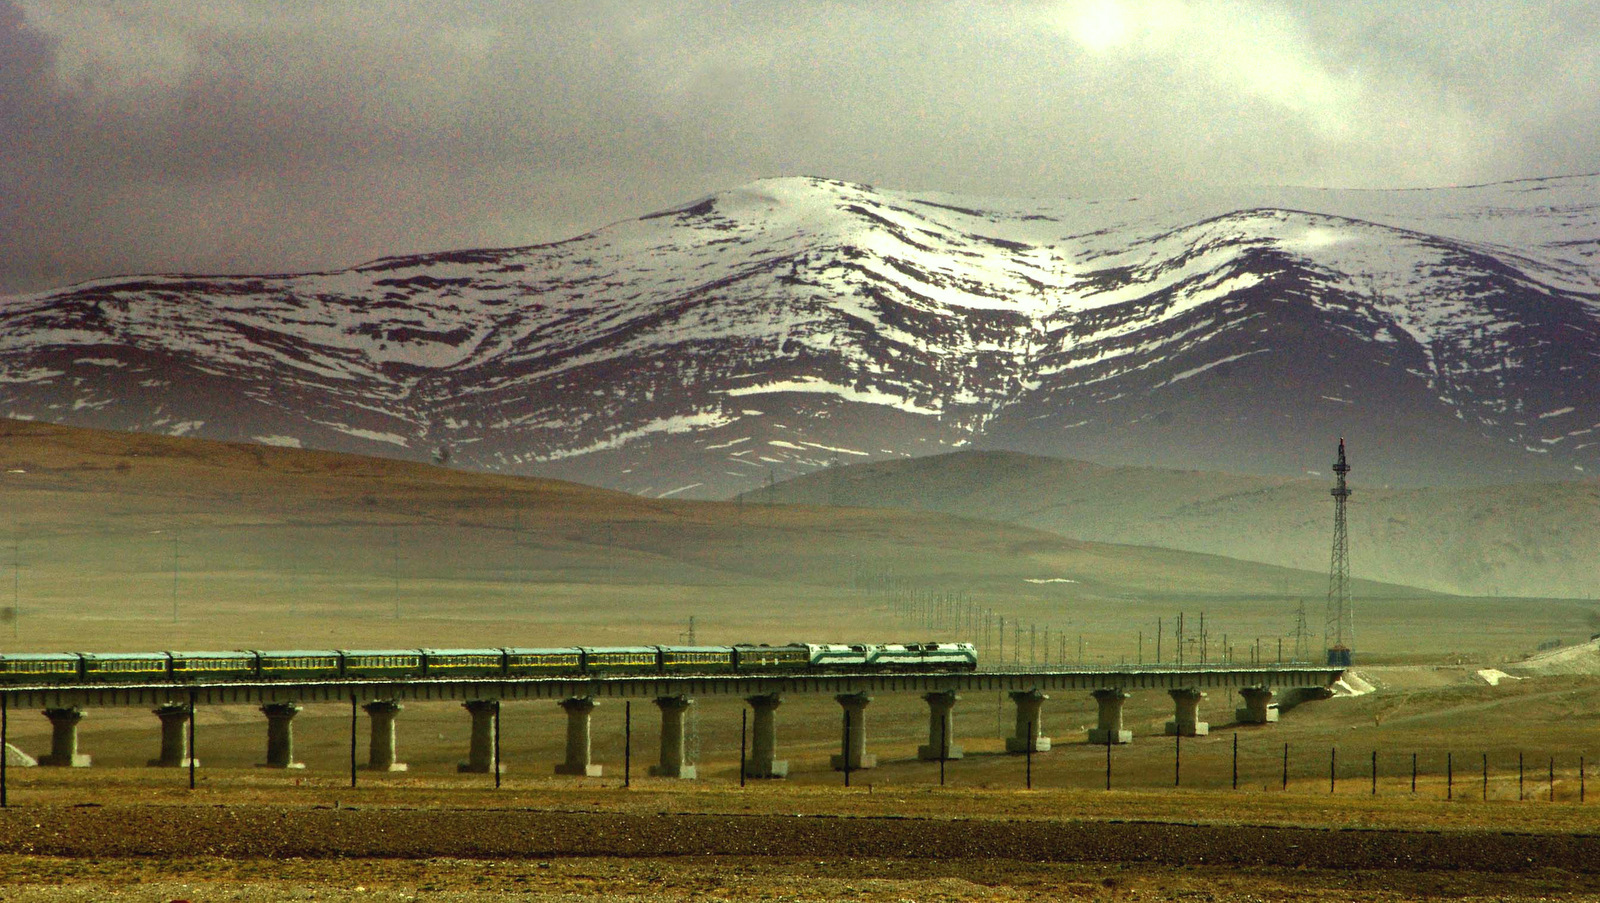 A train runs along the Qinghai-Tibet Railway in the section of Golmud, northwest China's Qinghai Province. (AP/ Xinhua, Chen Xie)